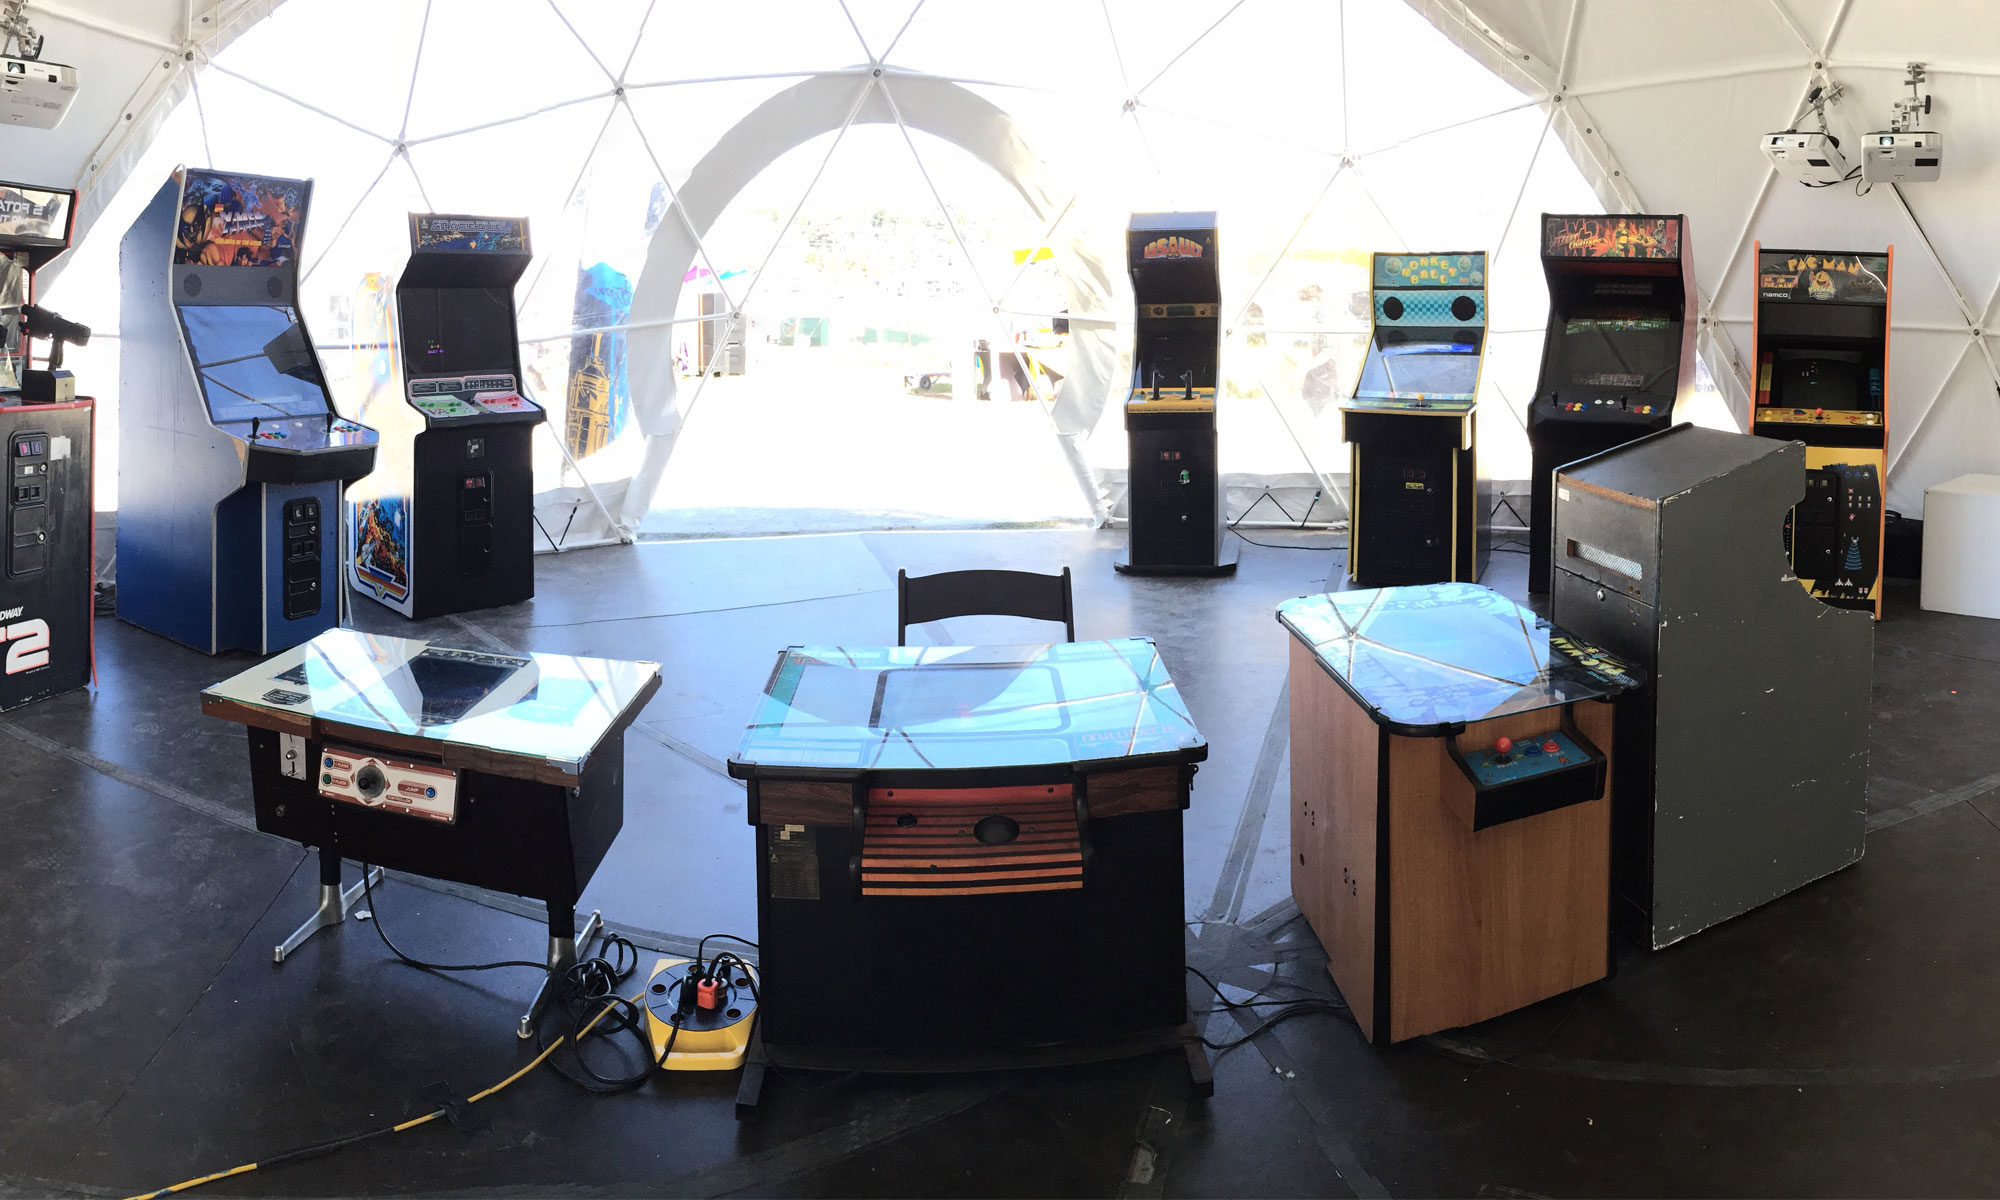 Northwest Flash Arcade